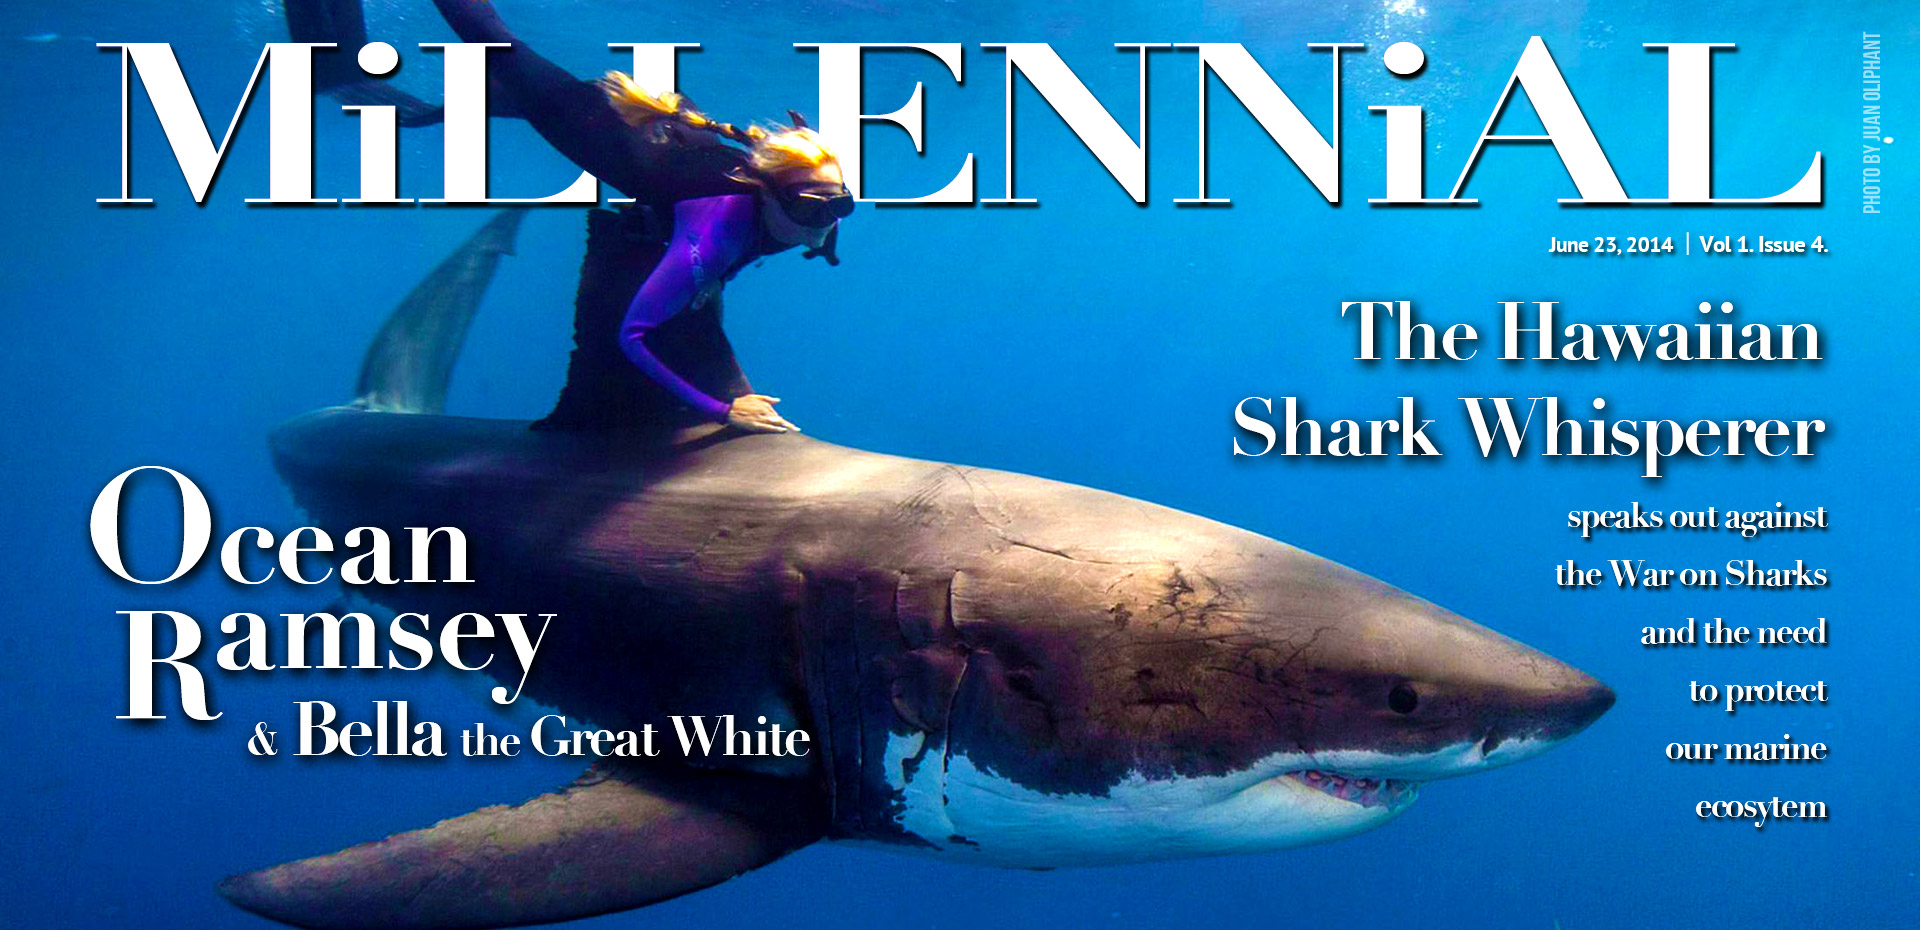 Millennial Magazine and Ocean Ramsey